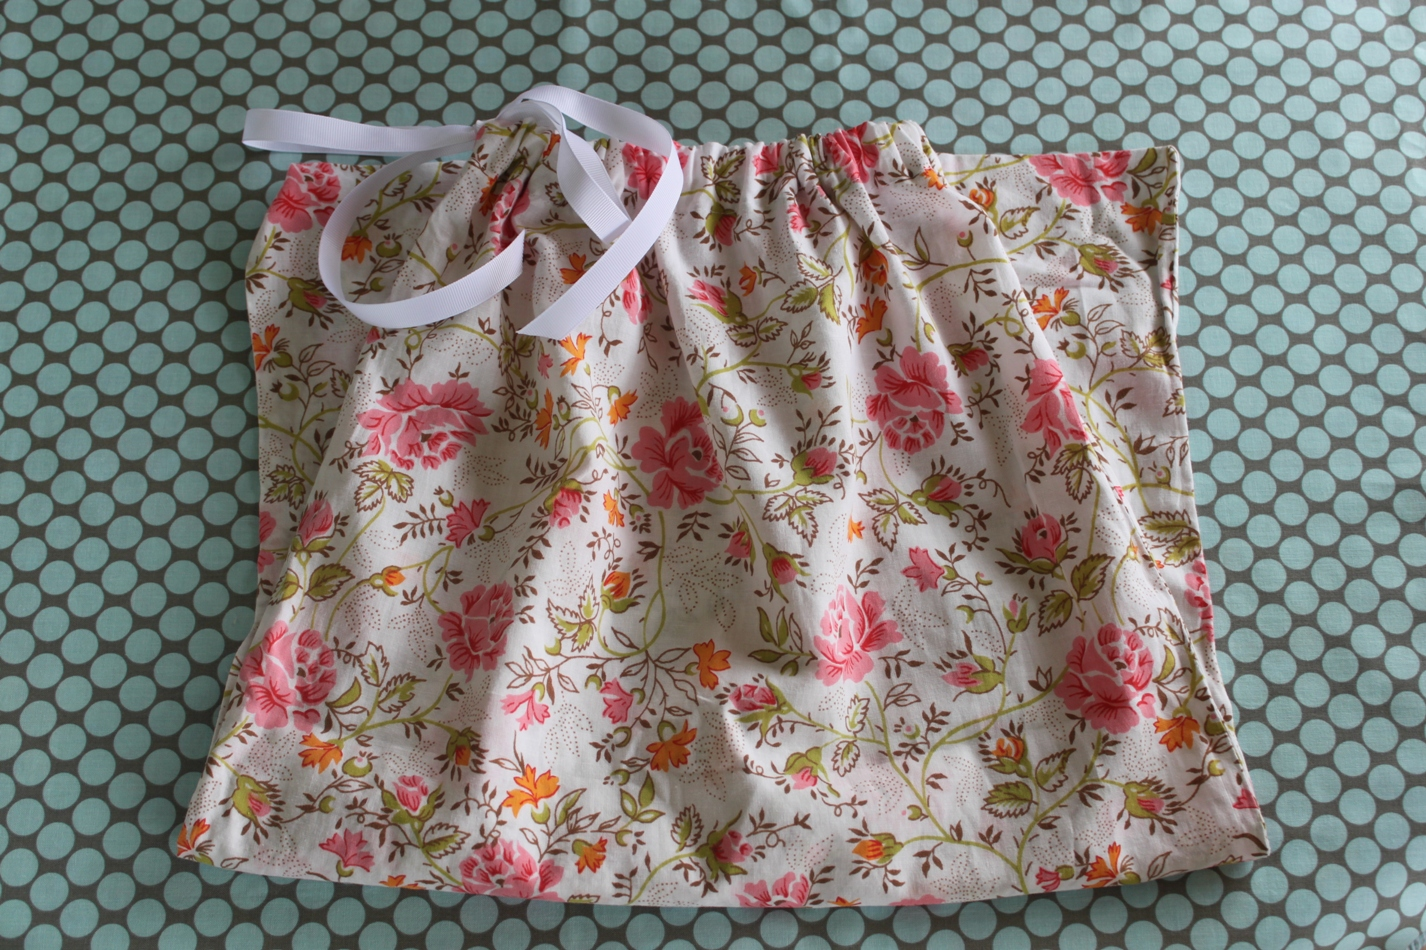 Diy Drawstring Backpack From Pillowcase: Pillowcase to Drawstring Bag   Tutorial   Sew Delicious,